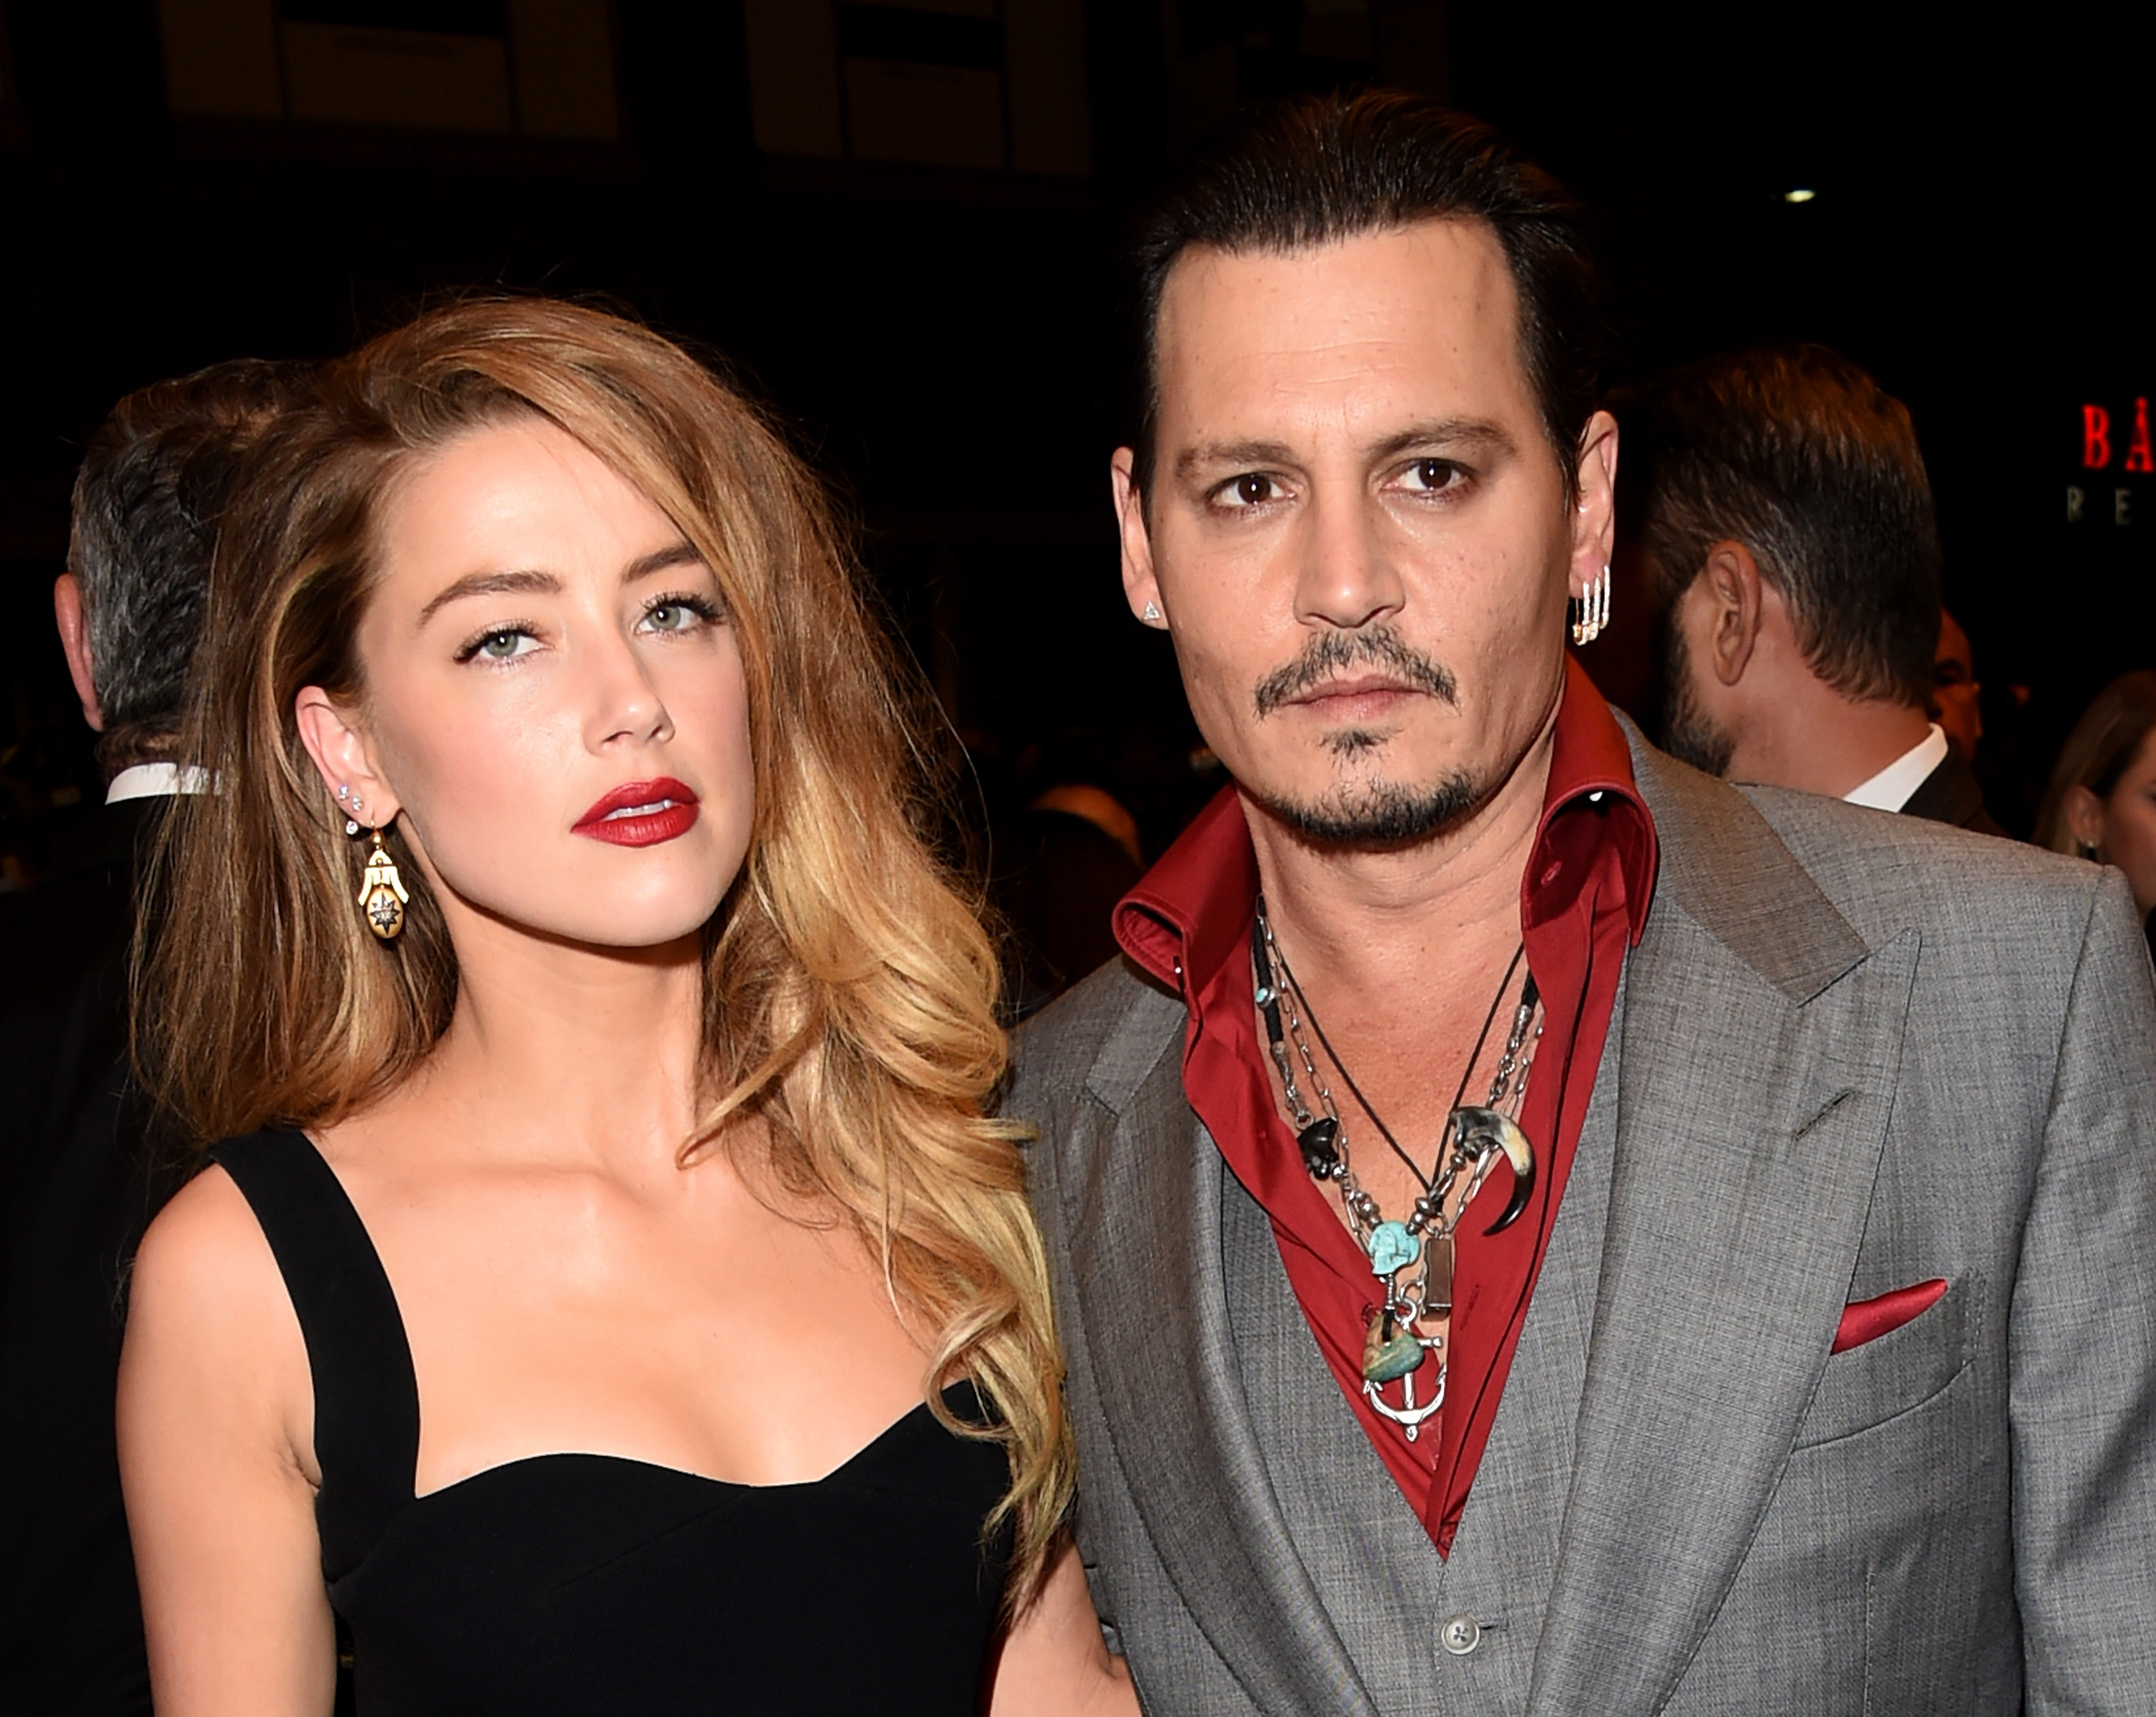 Another Actor Defends Johnny Depp With Shocking Accusations Of Amber Heard GettyImages 488255658